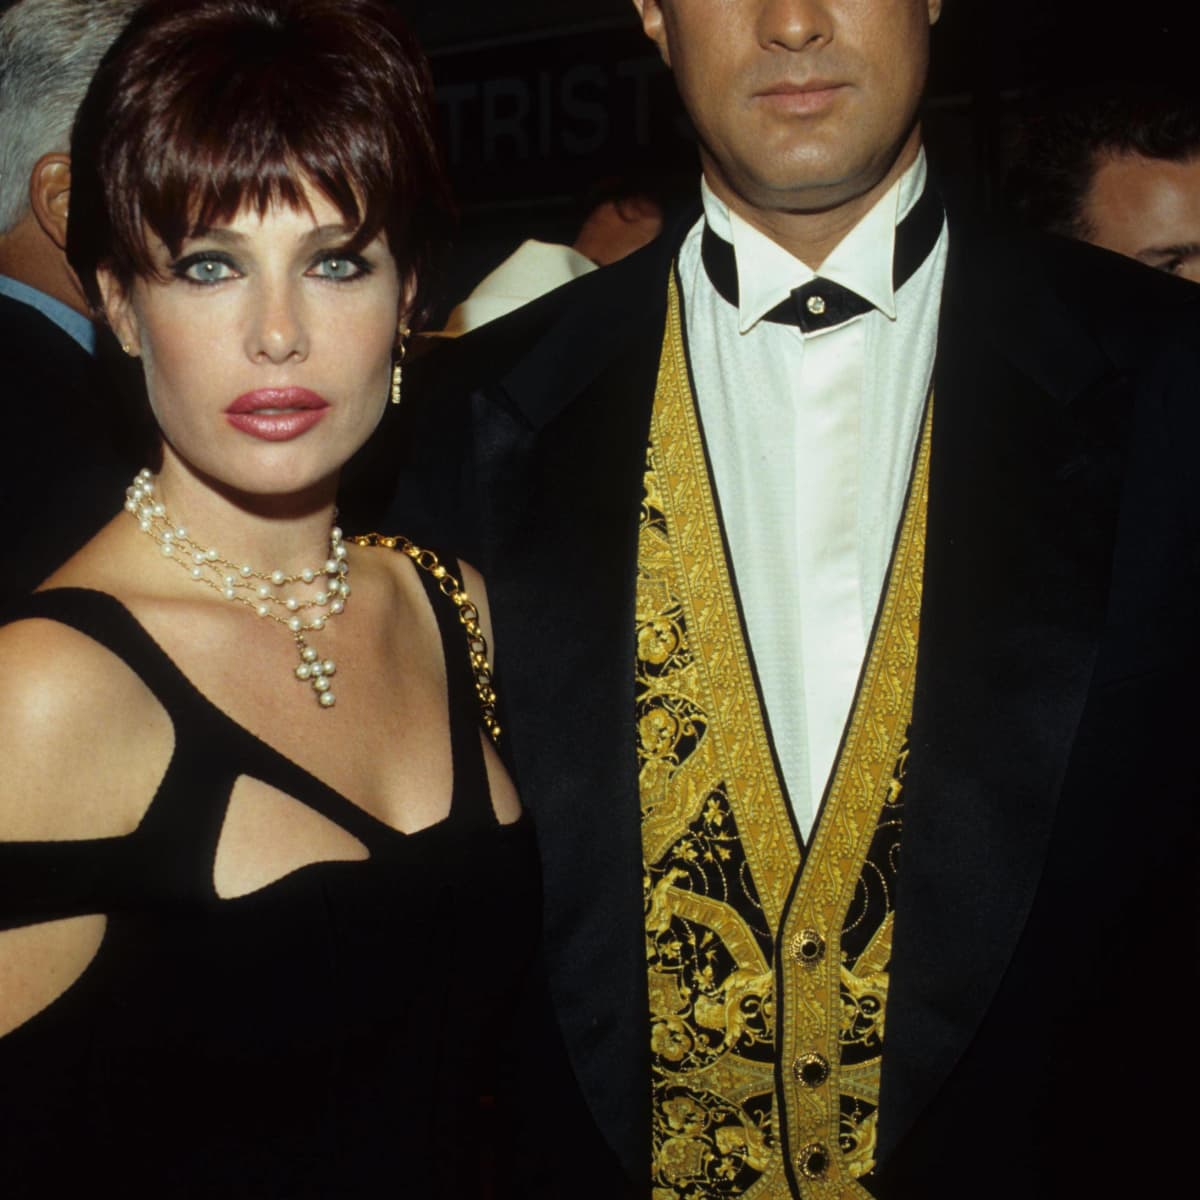 Fotos De Kelly Lebrock kelly lebrock: these are her 3 husbands